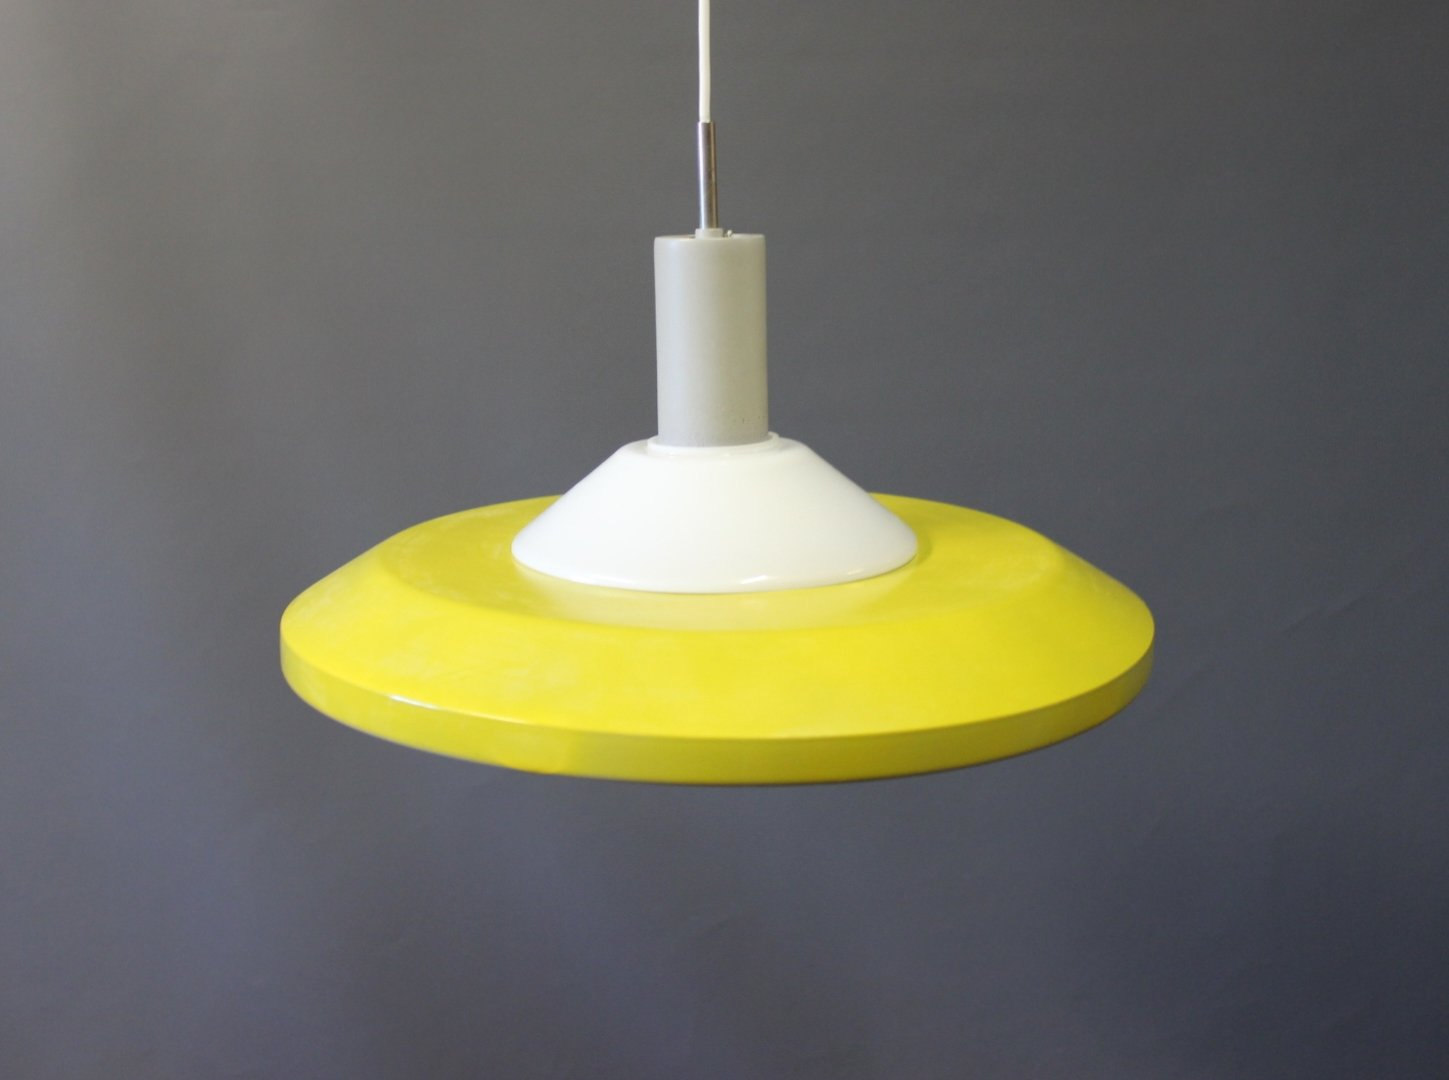 Stockholm Pendant In Yellow Lacquered Metal And Opaline Glass From Louis Poulsen 1960s For Sale